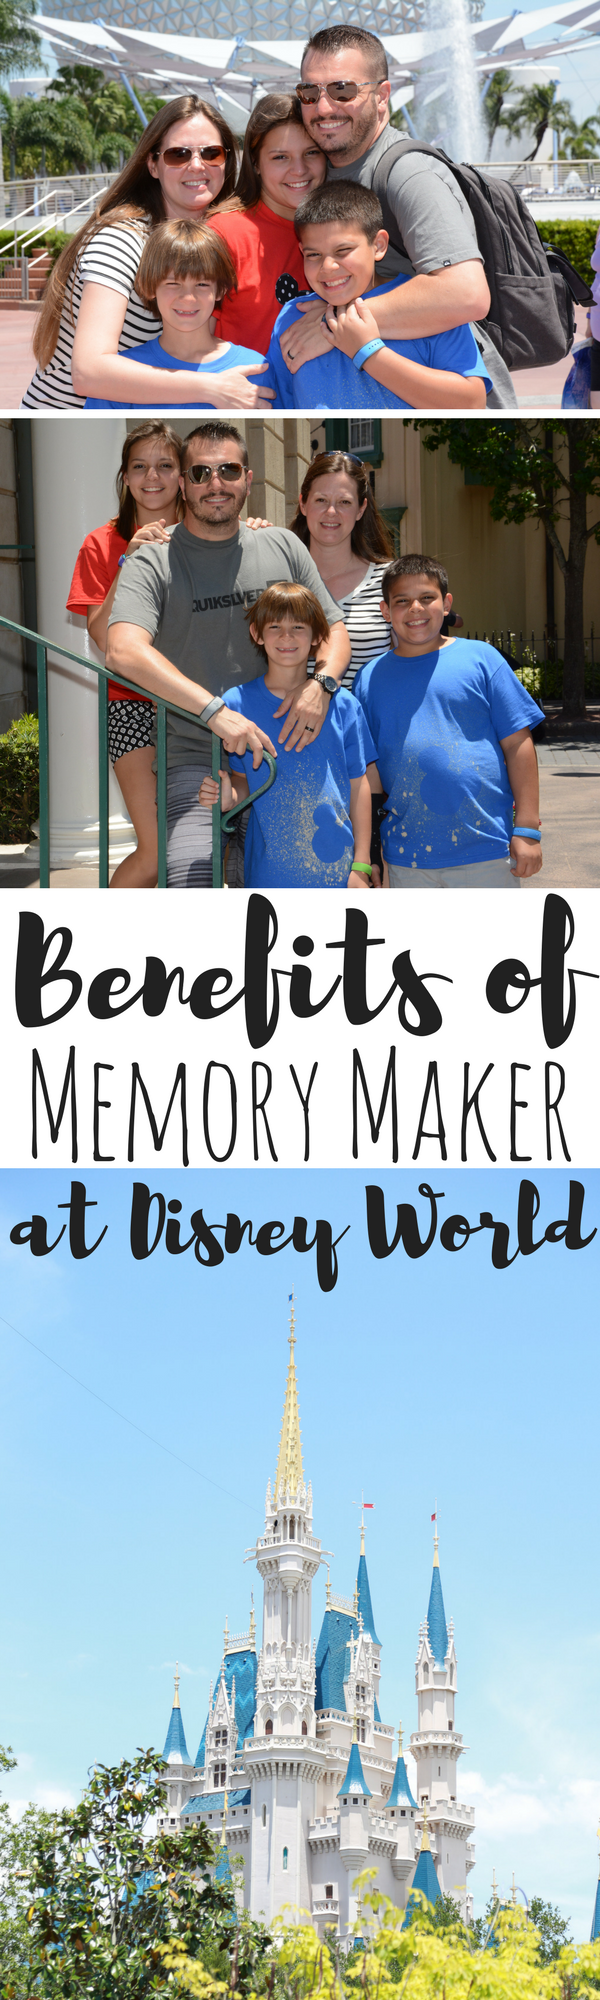 Take advantage of Disney's Photopass service and enjoy the benefits of Memory Maker on your Disney vacation.